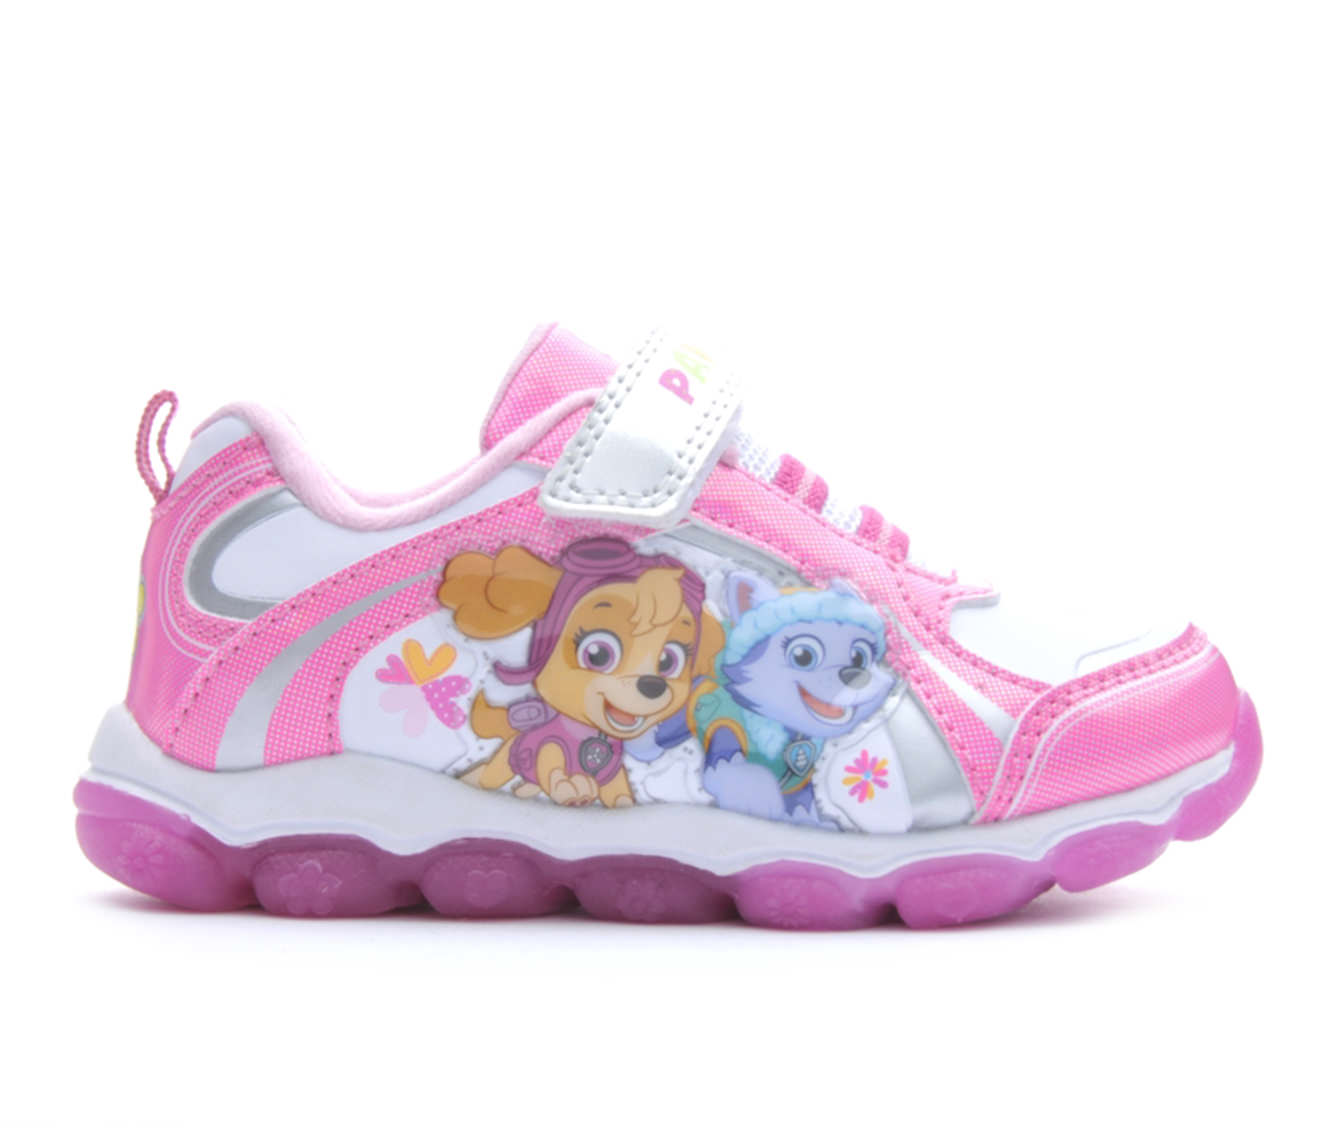 Girls' Nickelodeon Paw Patrol 2 Sneakers (Pink)